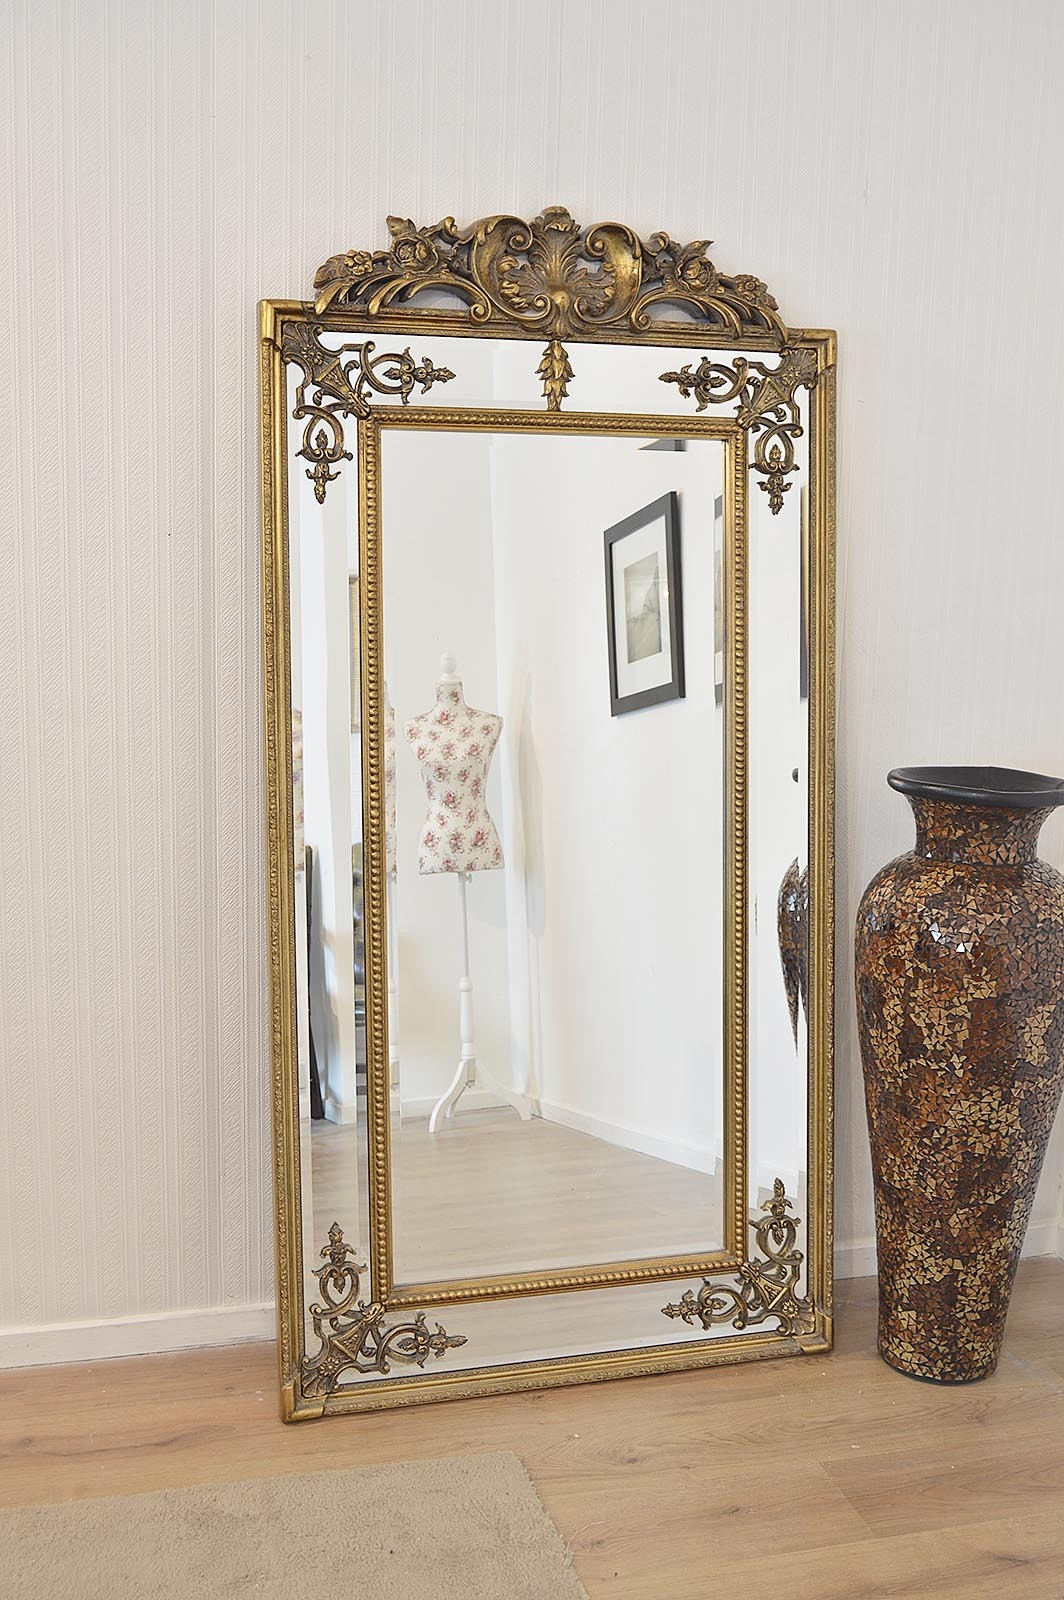 Large Gold Ornate Antique Design Wall Mounted Mirror New 6ft X 3ft For Gold Venetian Mirror (Image 9 of 15)